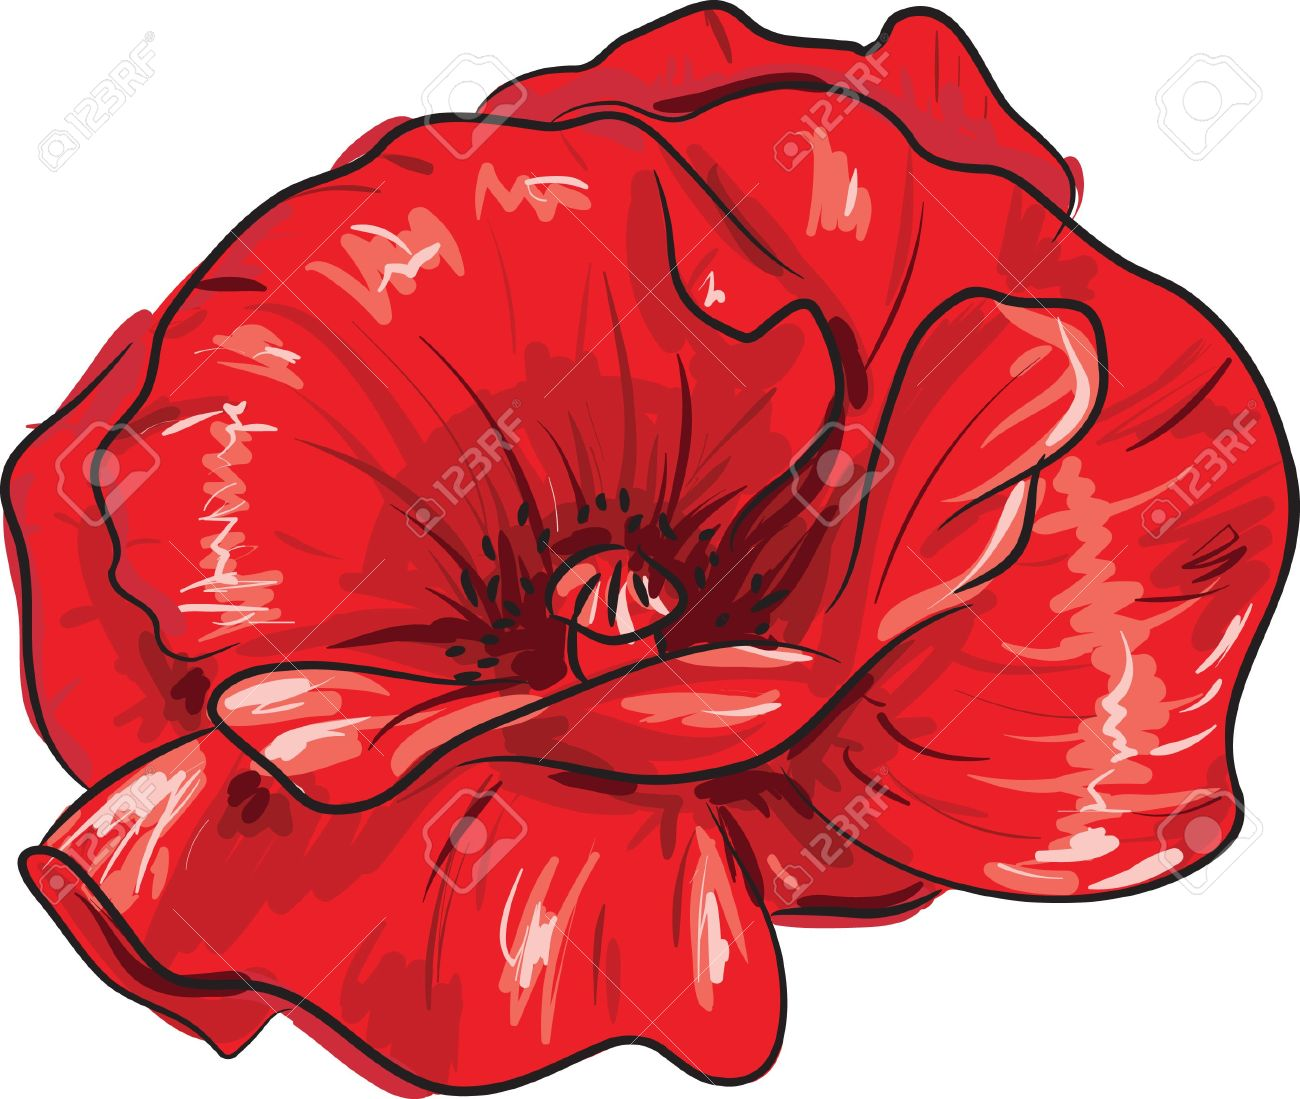 Red poppy flower freehand style painting stock photo picture and red poppy flower freehand style painting stock photo 5735164 mightylinksfo